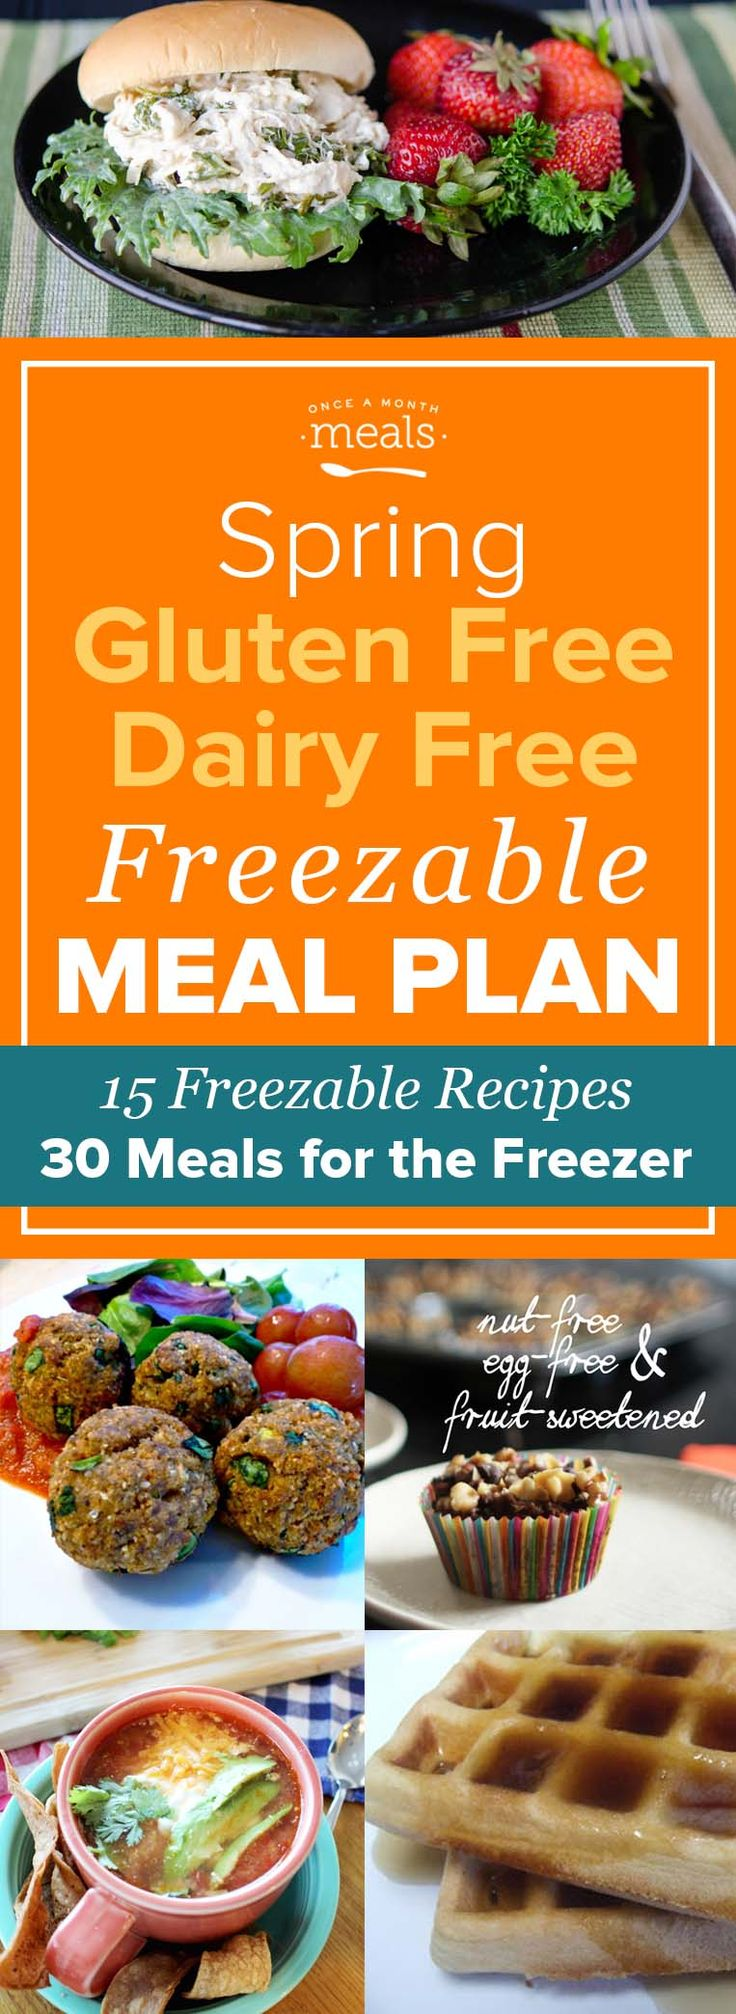 Time to enjoy spring produce in your gluten and dairy free freezer meals! From asparagus to mushrooms these recipes bring fresh flavors to meal planning. via @onceamonthmeals